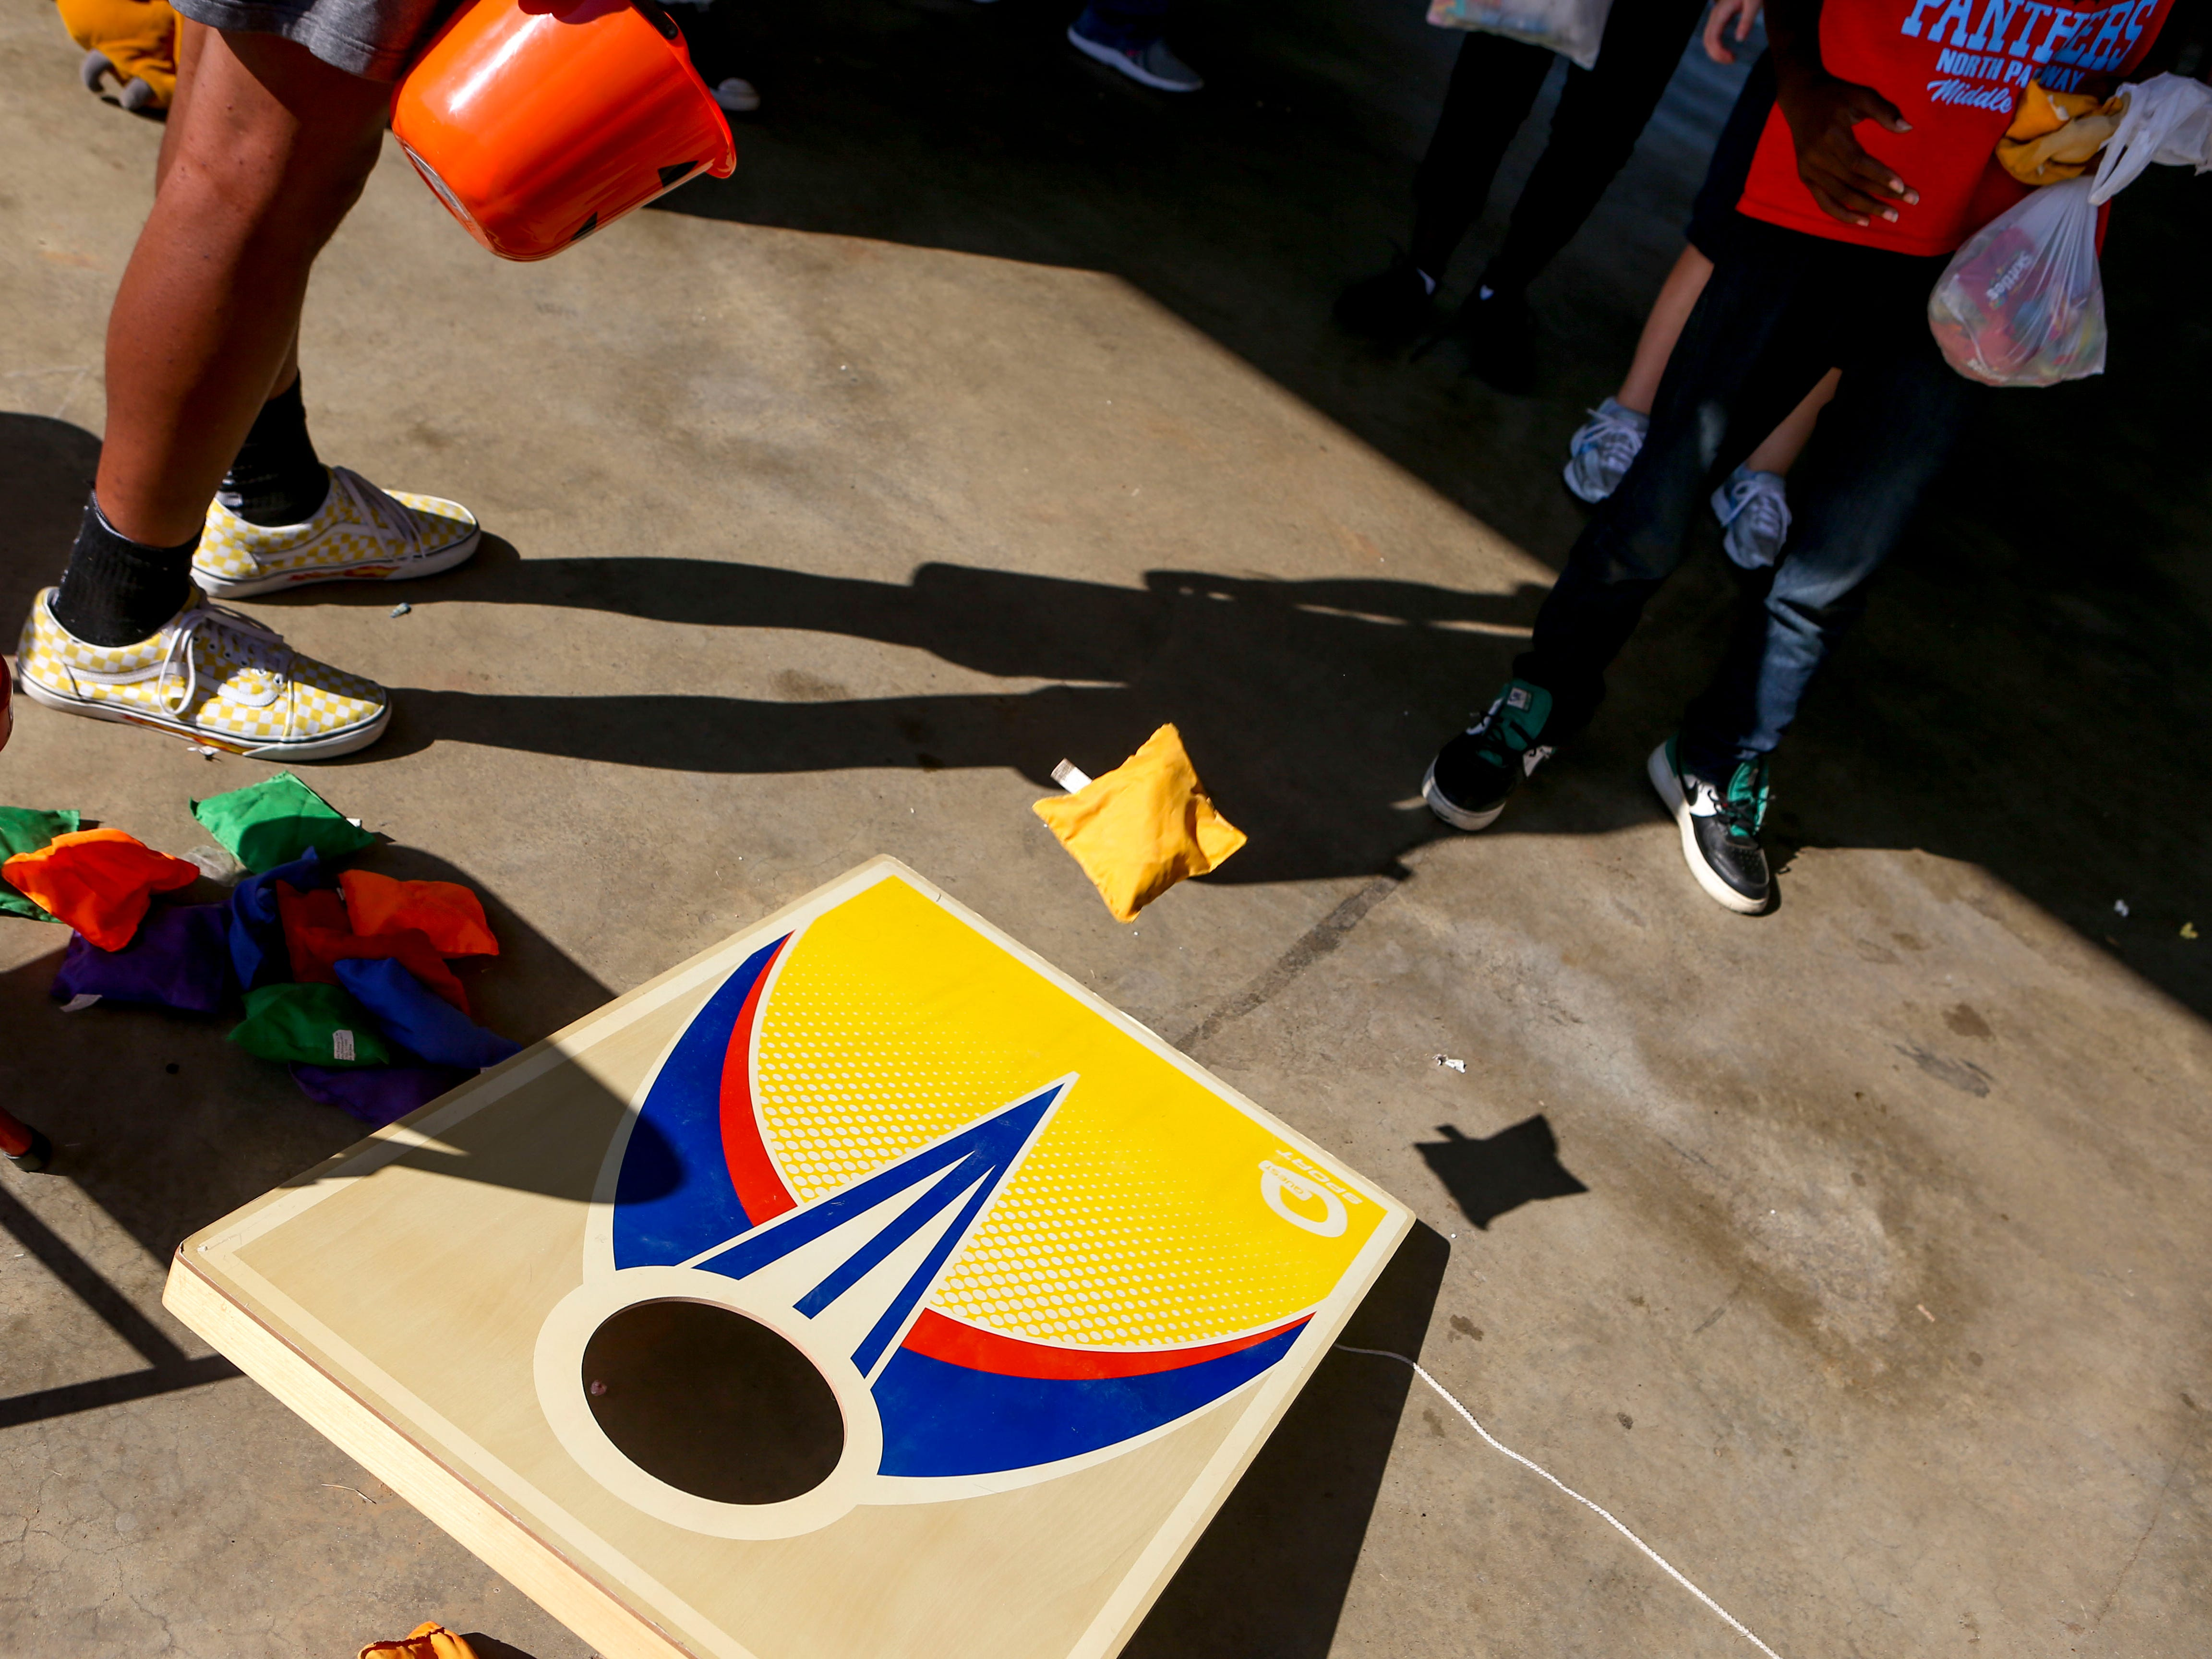 Kids attempt to toss a bean bag into a corn hole at the Day of Champions celebration held at Jackson Fairgrounds Park in Jackson, Tenn., on Wednesday, Sept. 19, 2018.